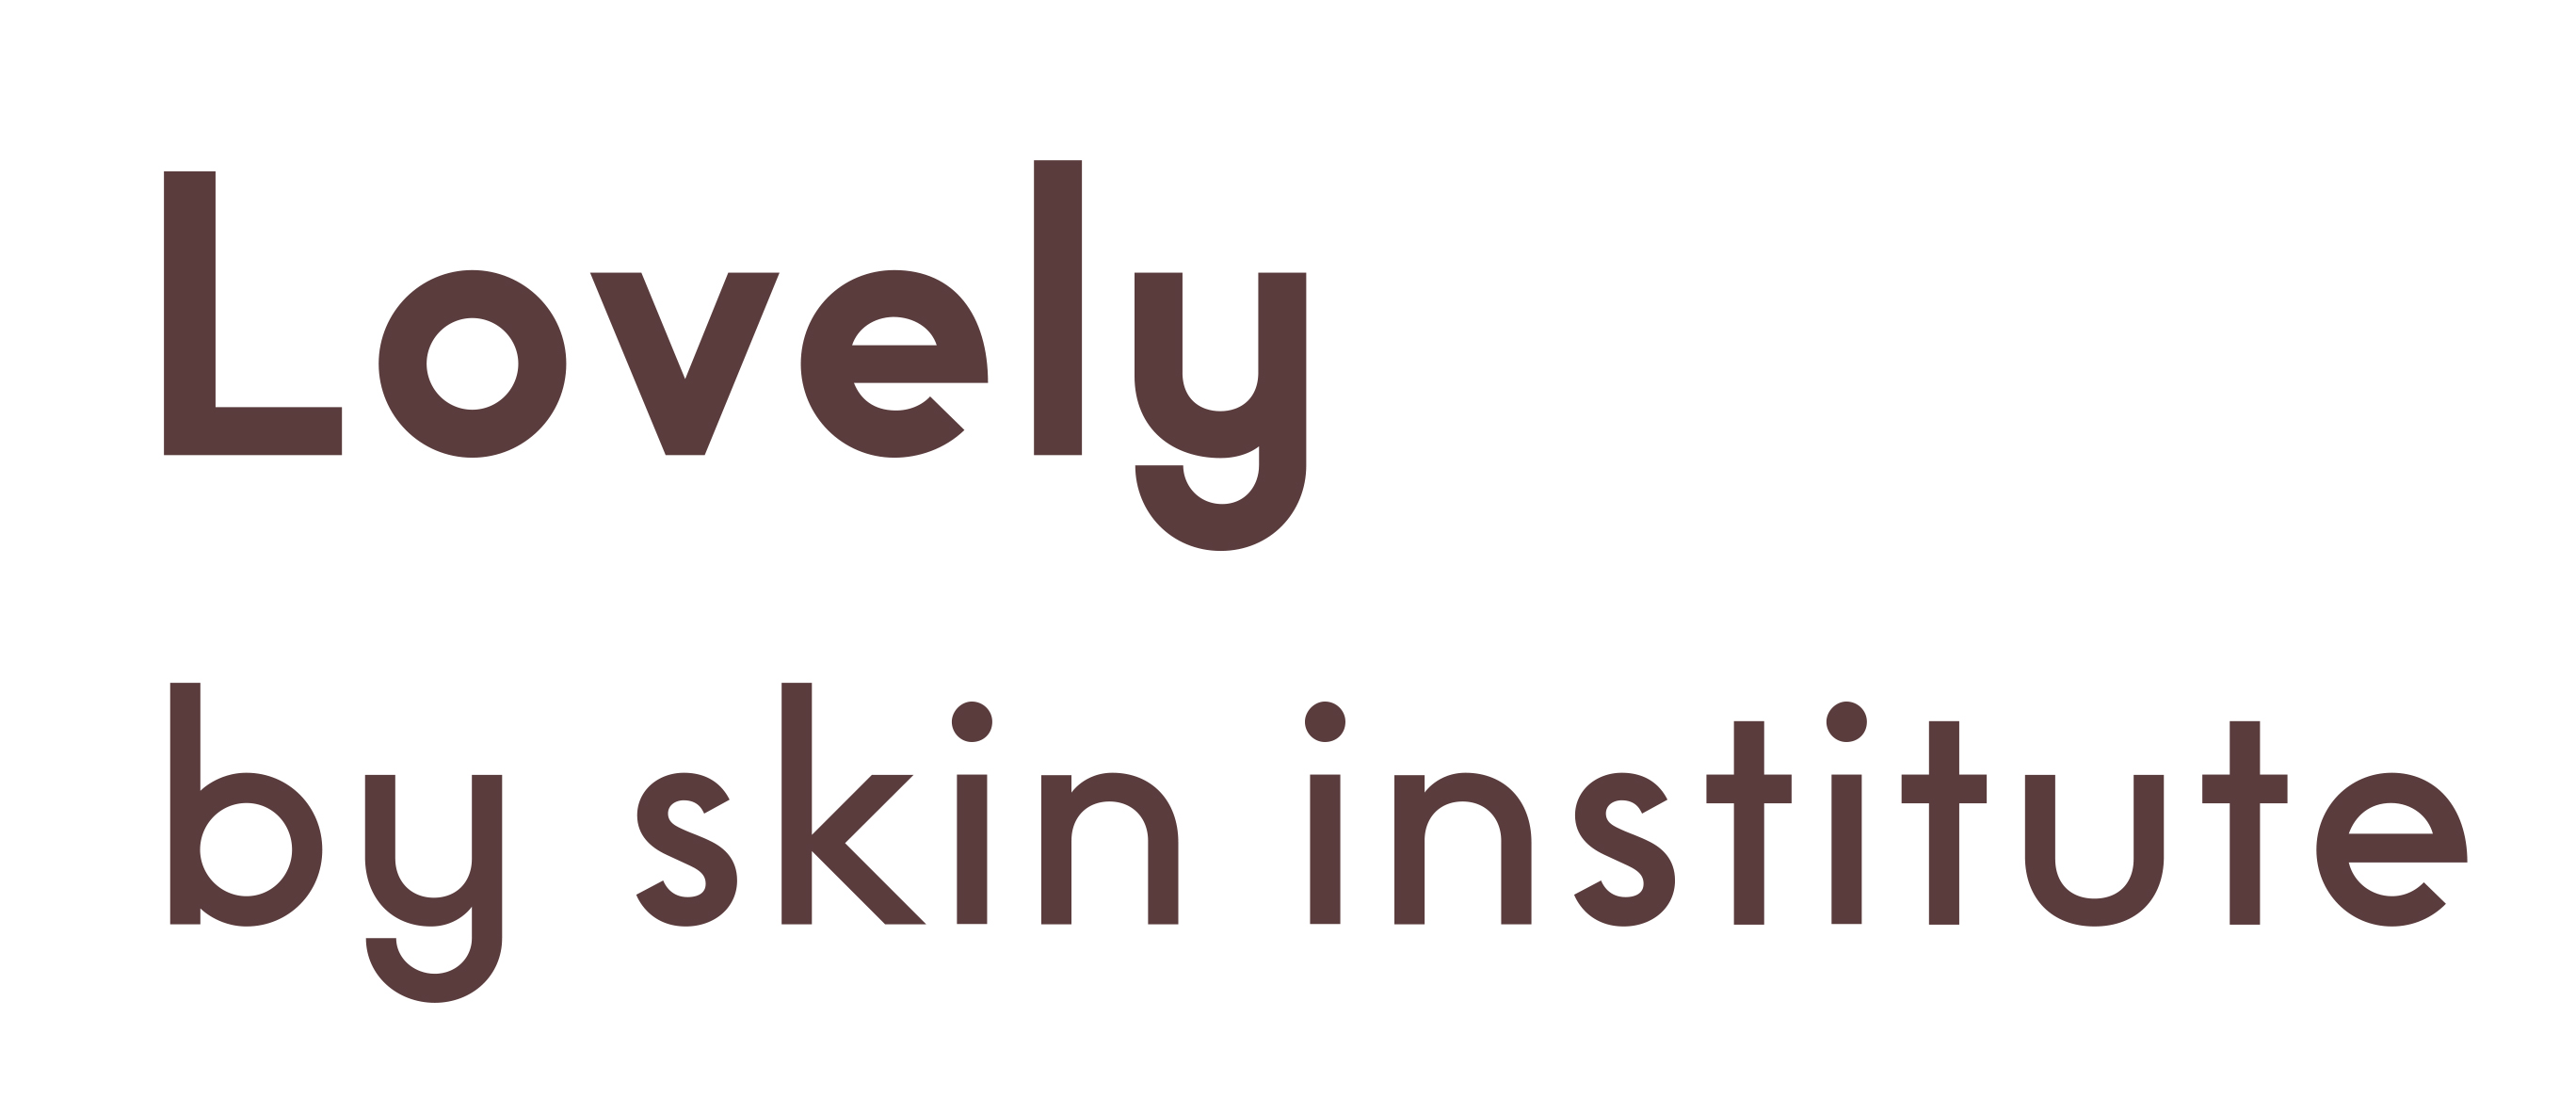 Lovely by Skin Institute logo